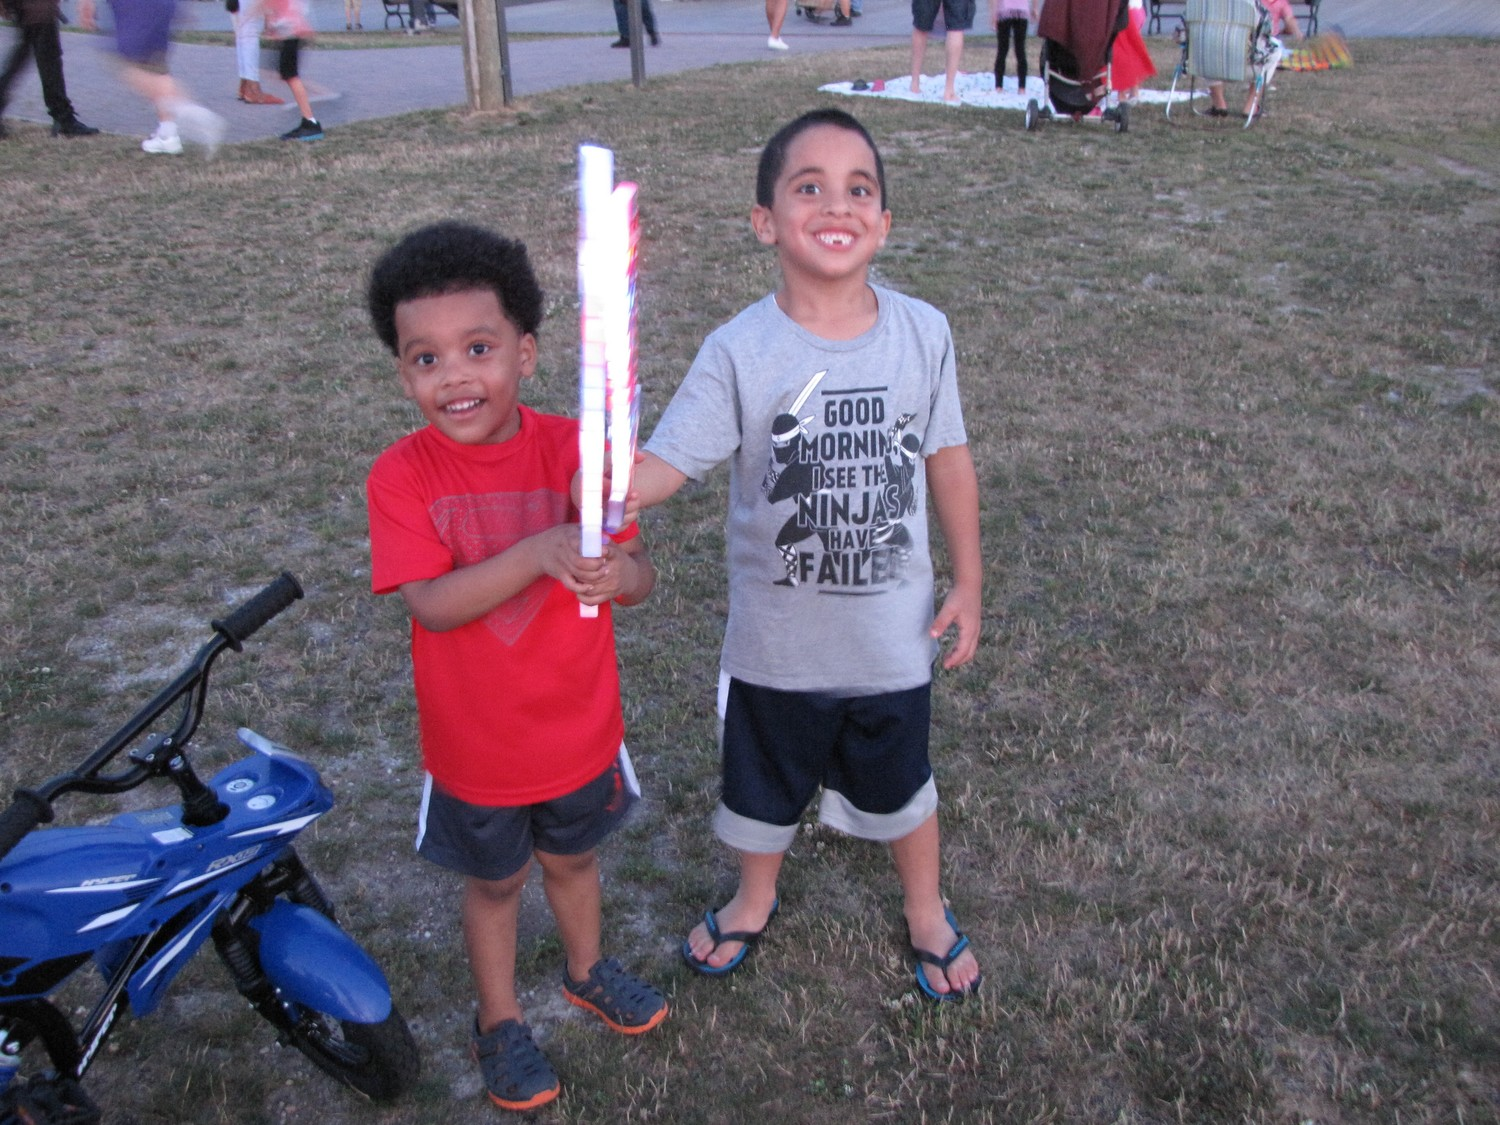 Becoming fast friends, Mason Bovere, near left, and Geovany Lora met at Sea Breeze Park before the fireworks show.